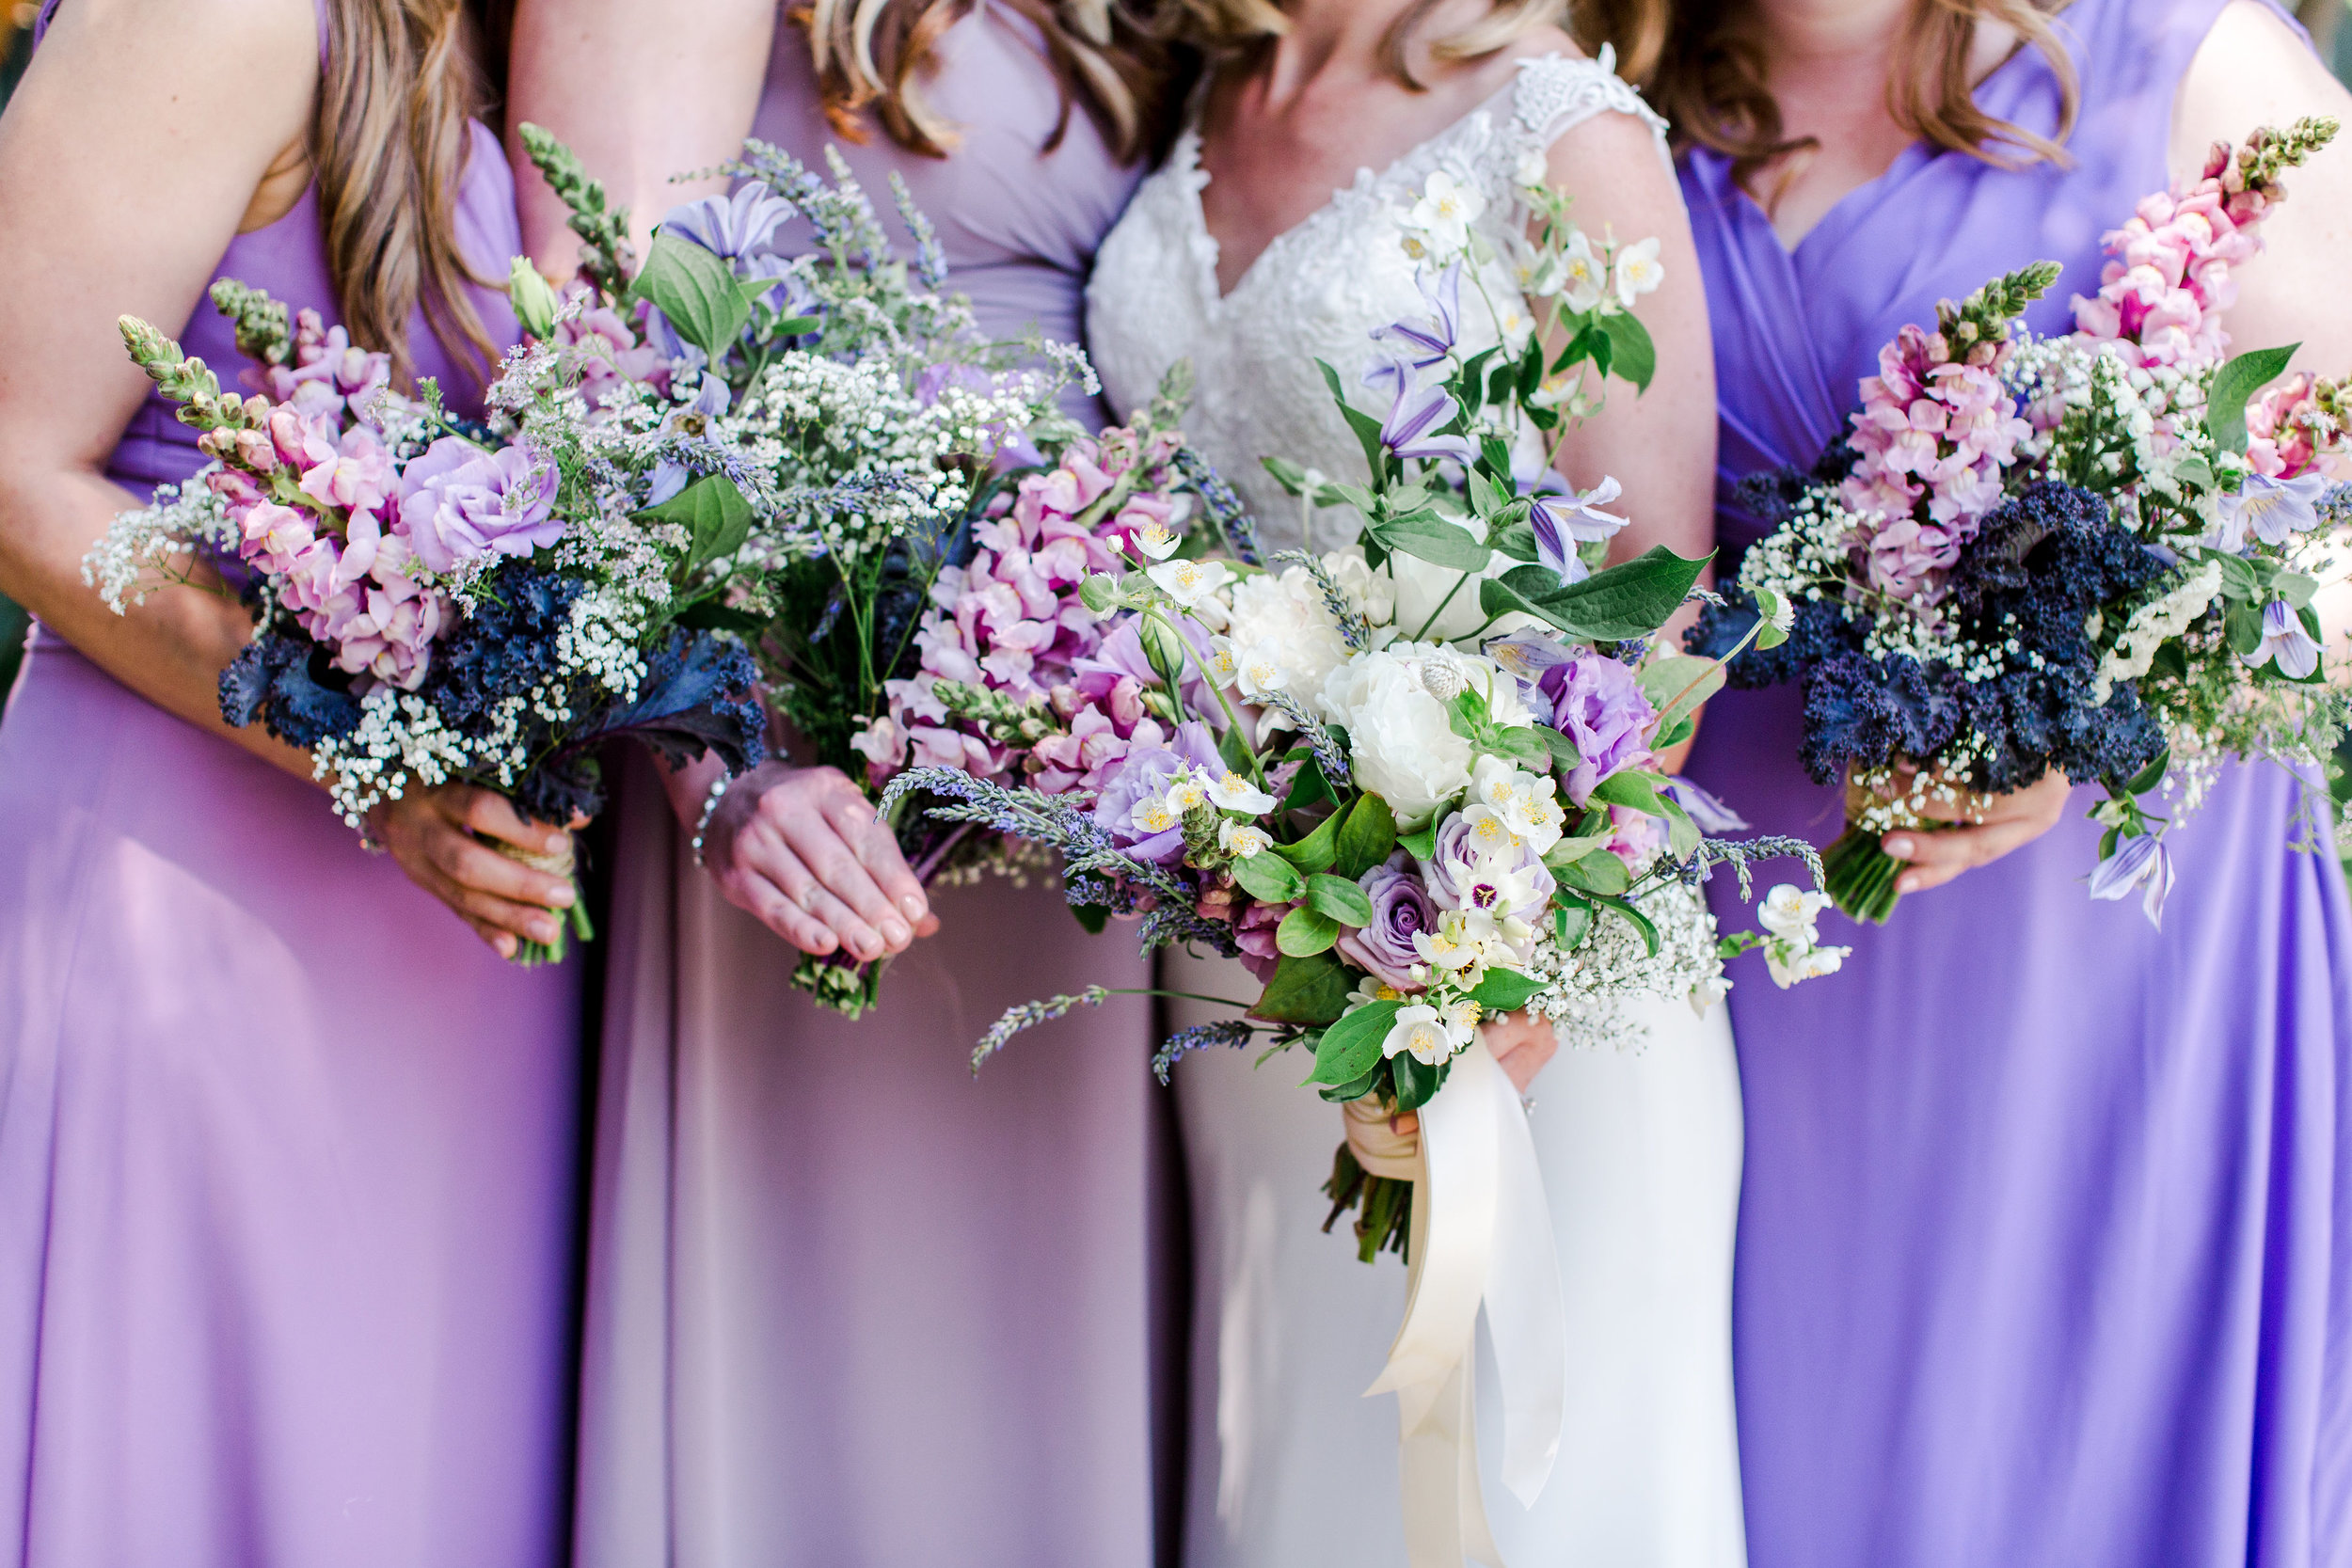 Sarah-Andy-Wedding-LavenderAndTwine_0177.JPG